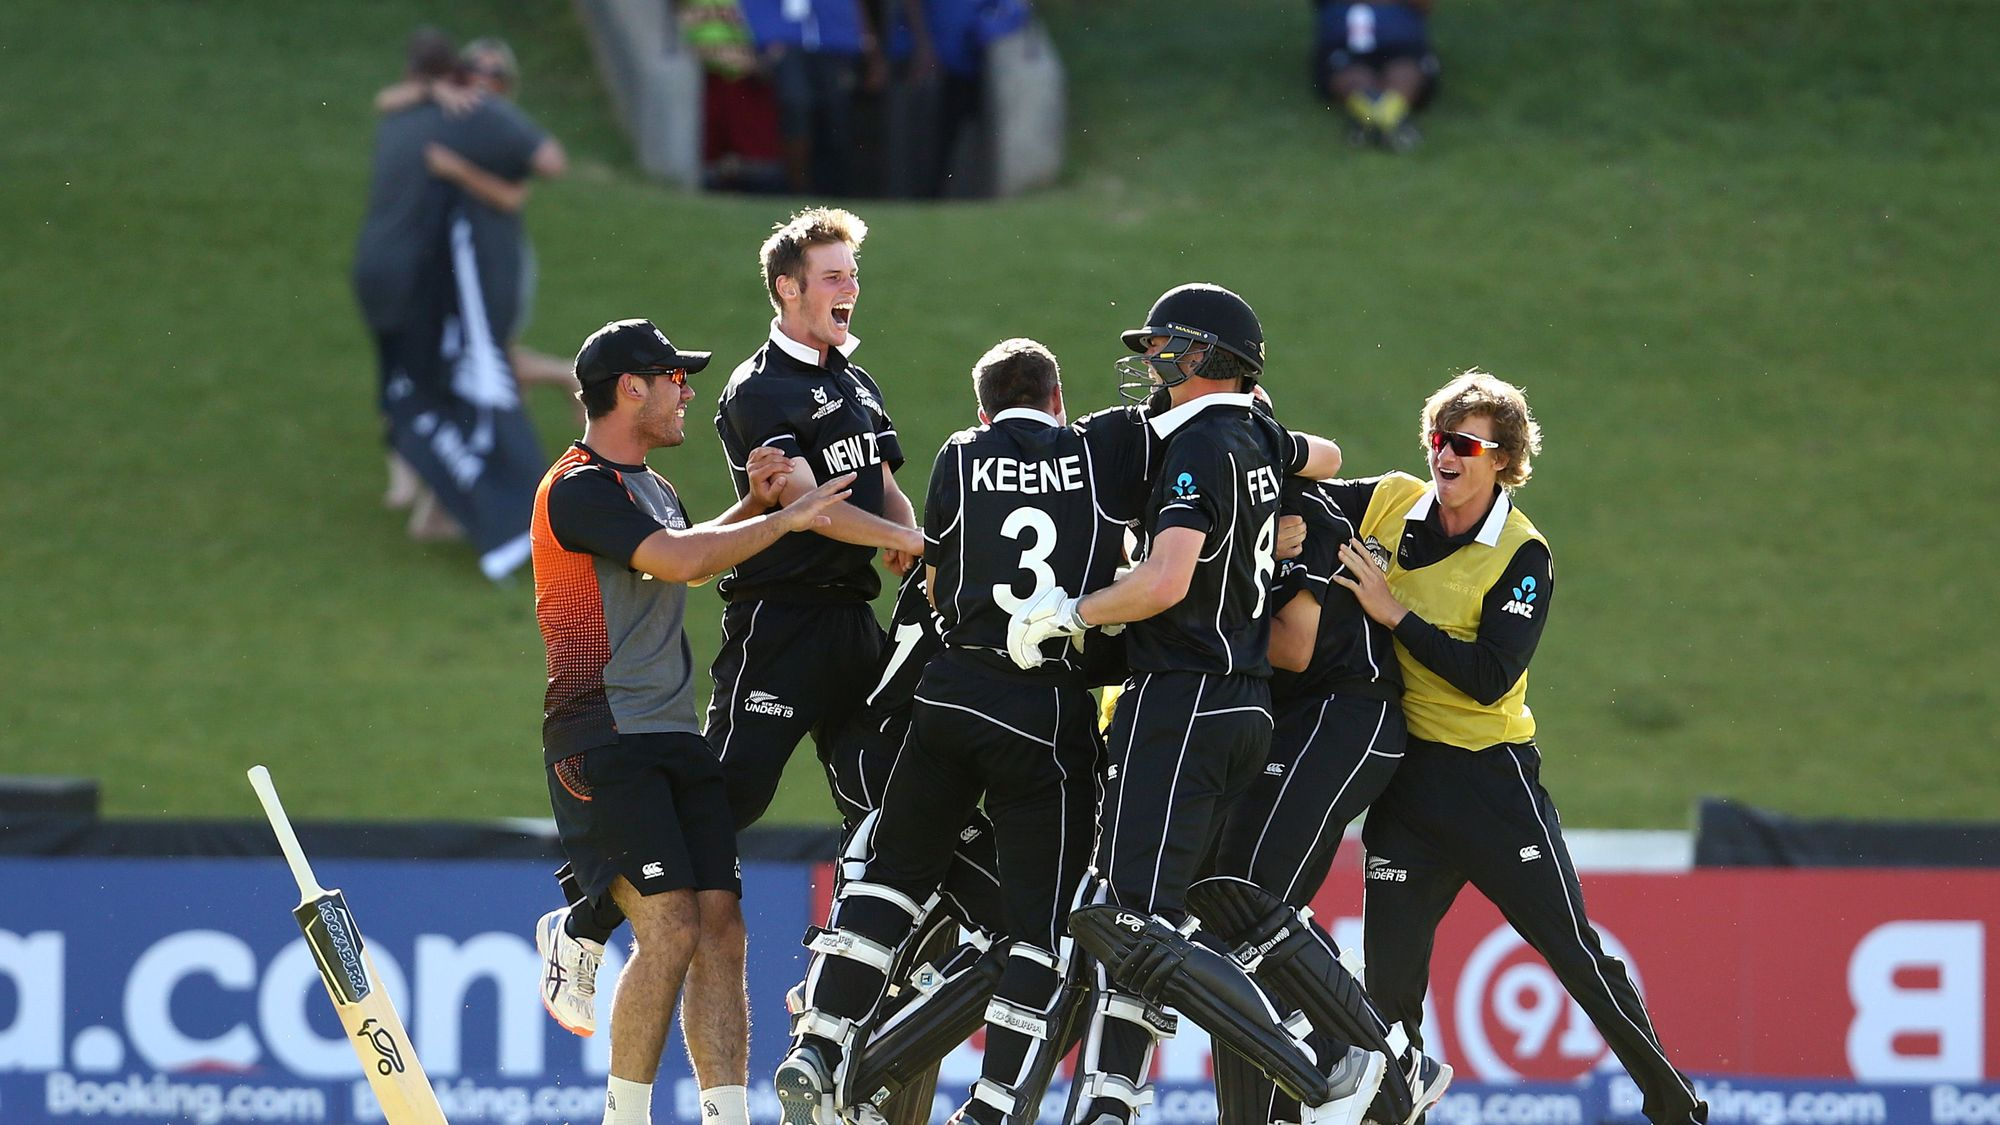 ICC U19 CWC: Clarke six wins New Zealand last-minute thriller